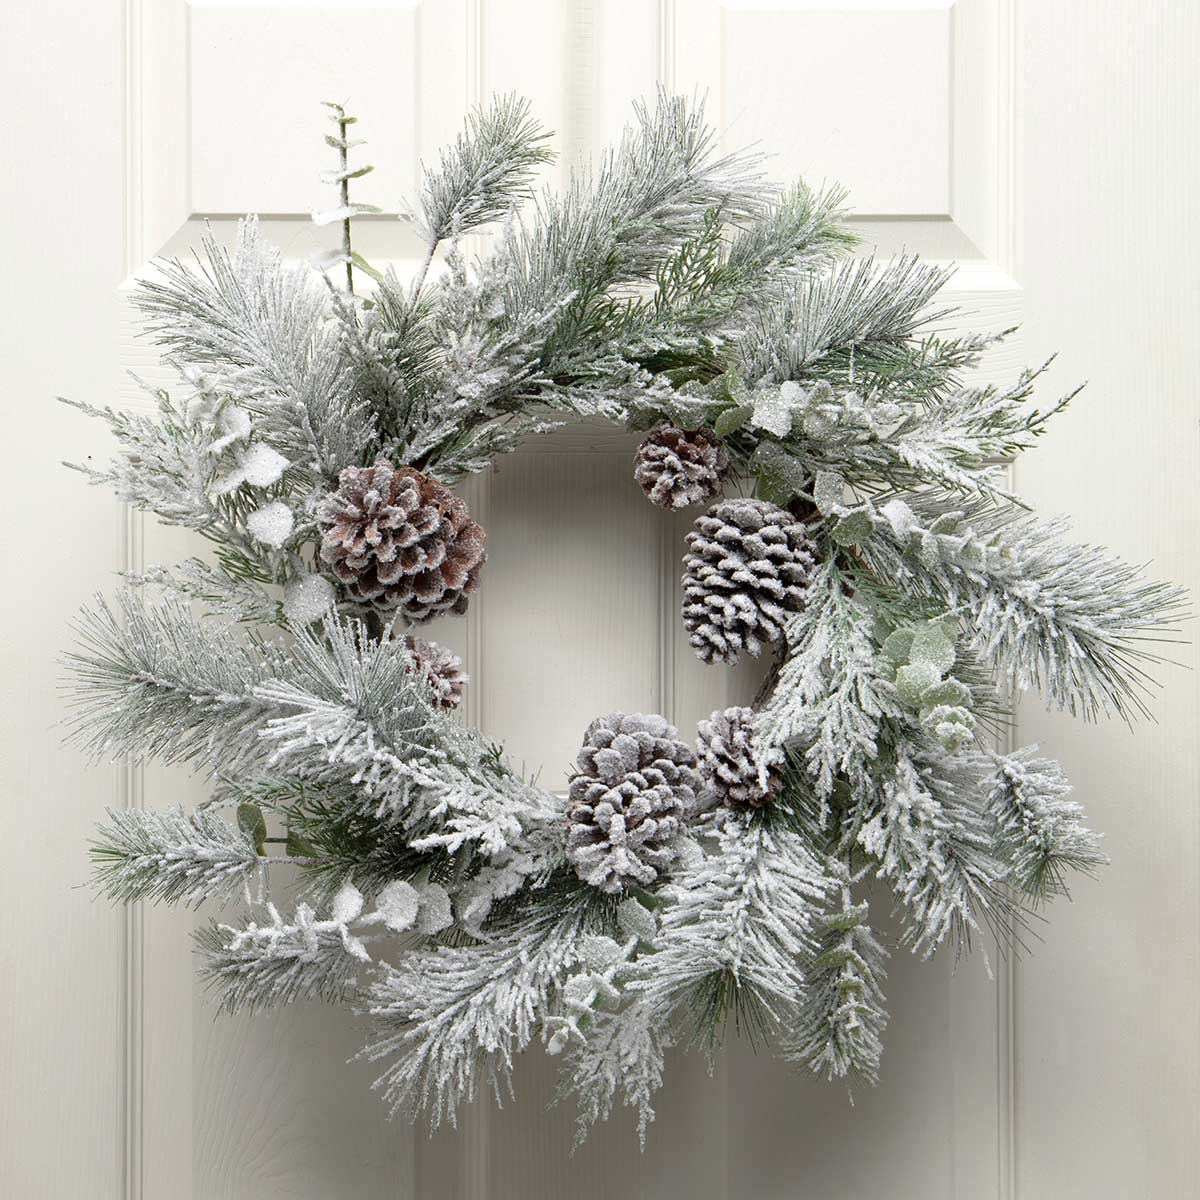 FROSTED PINE & EUCALYPTUS WREATH